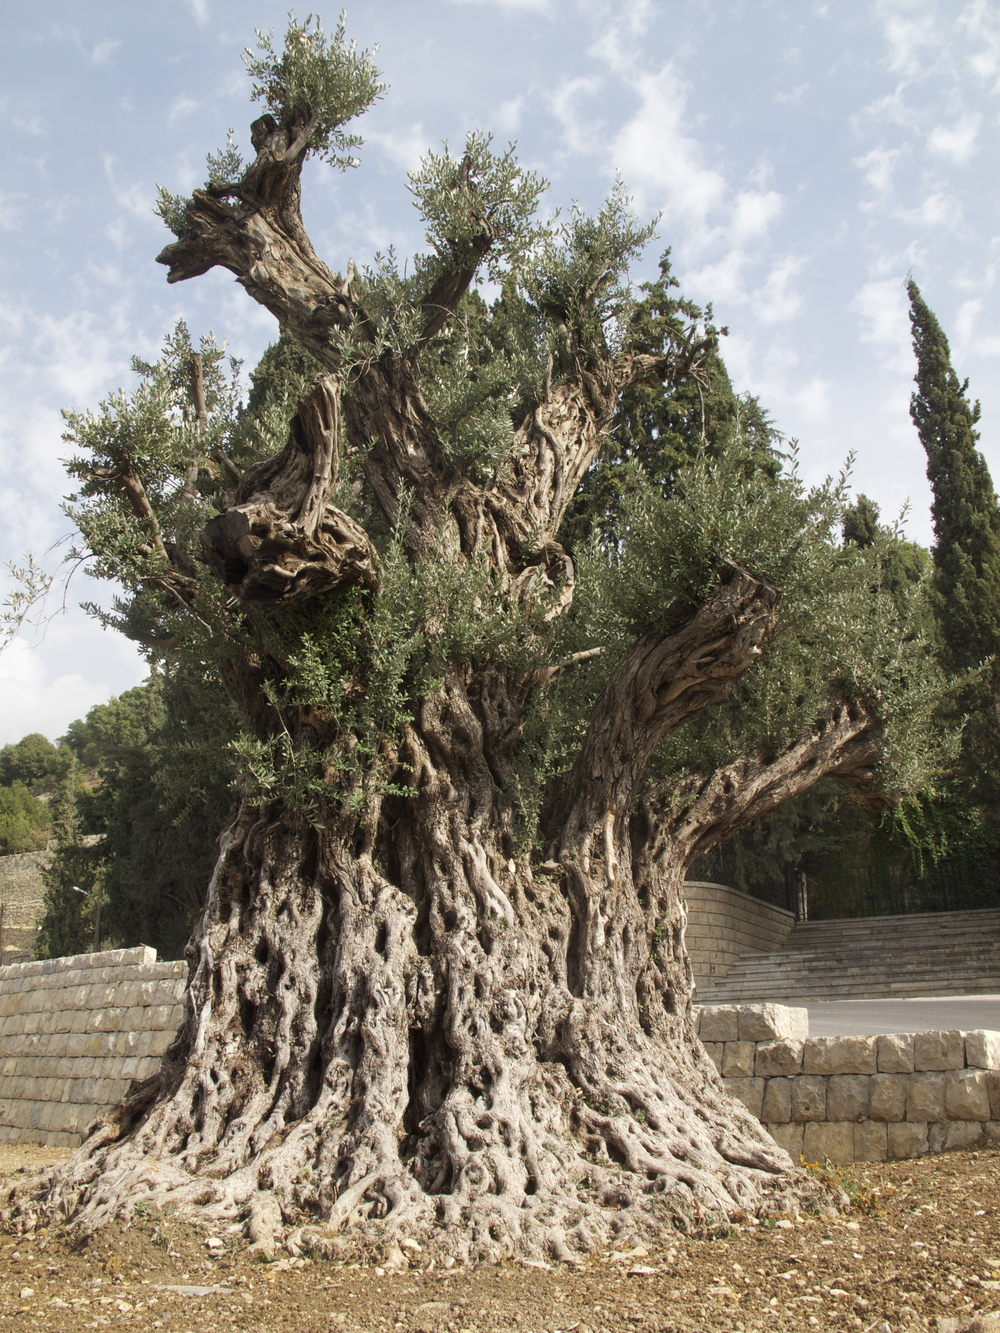 One of the oldest Olive trees in the world, in the Shouf region of Lebanon.